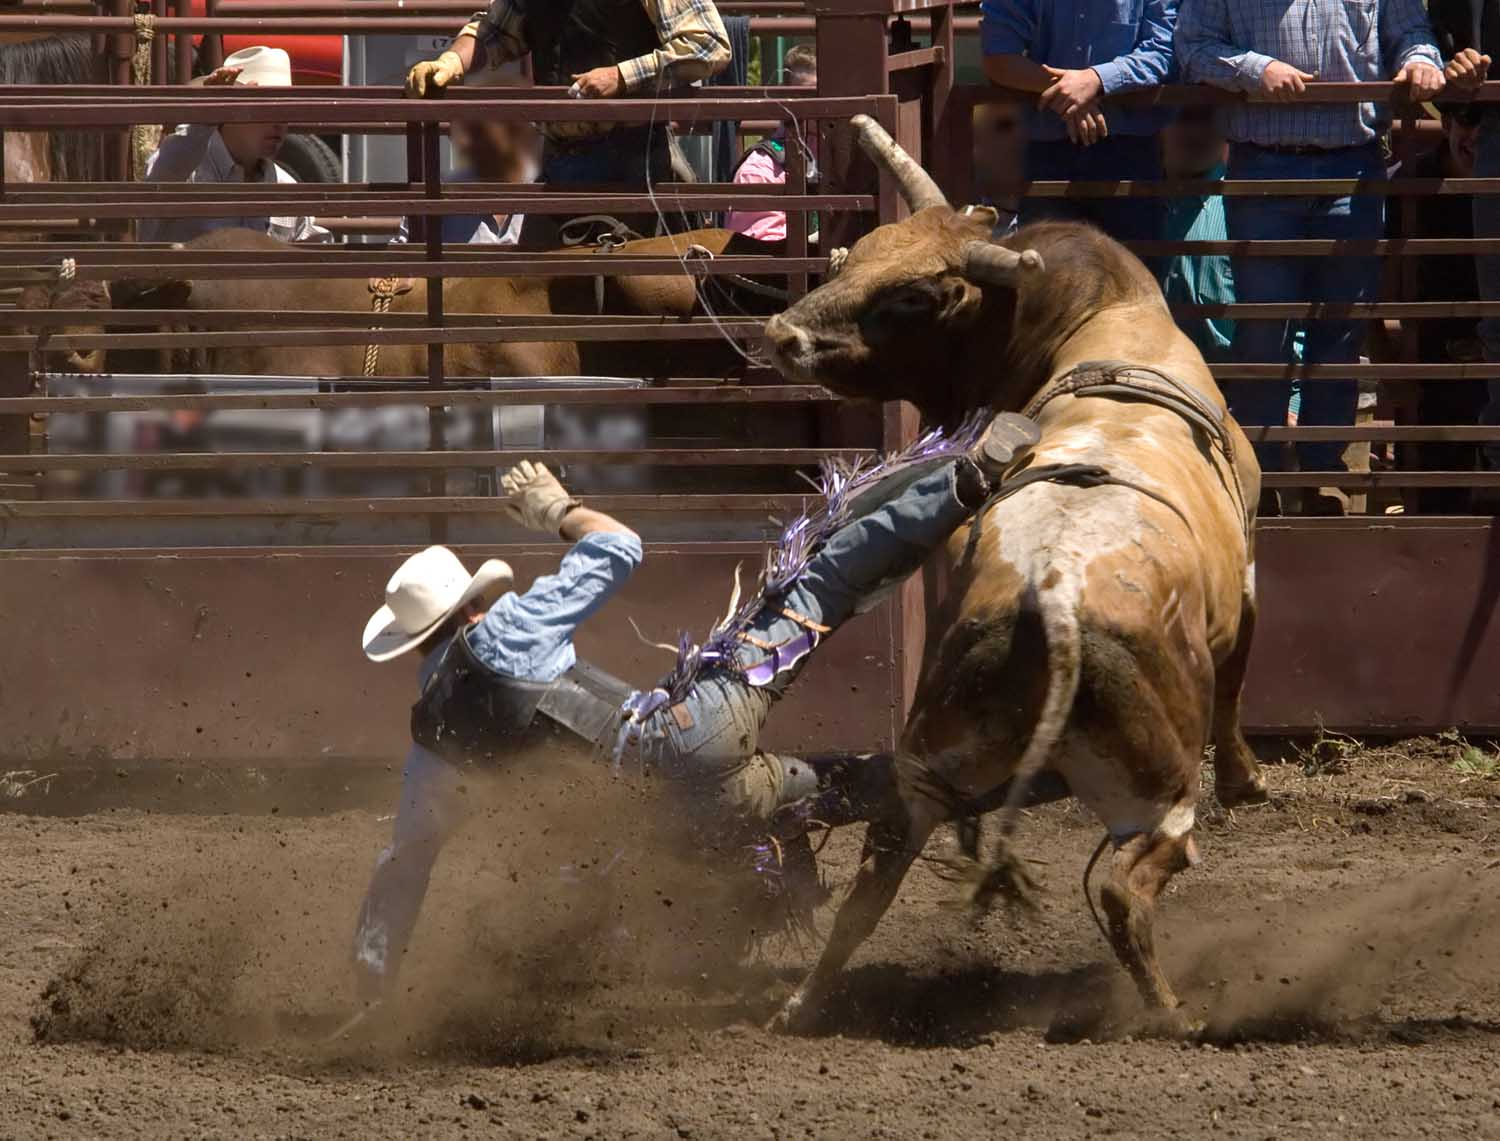 Buy Cheap Prca Rodeo Tickets Prca Rodeo Promo Code